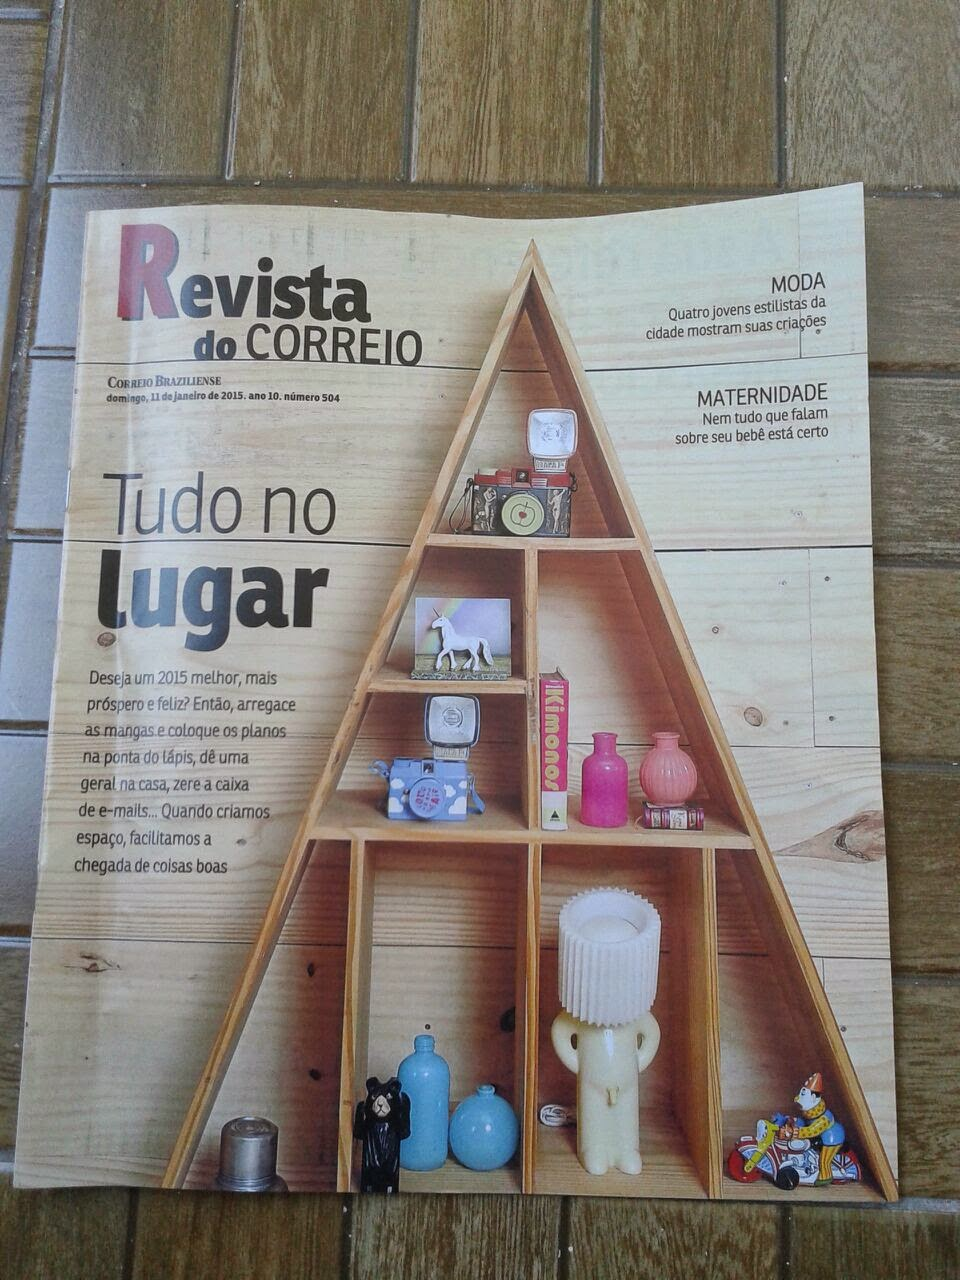 JAN/2015-Revista do Correio Braziliense - Número 504.